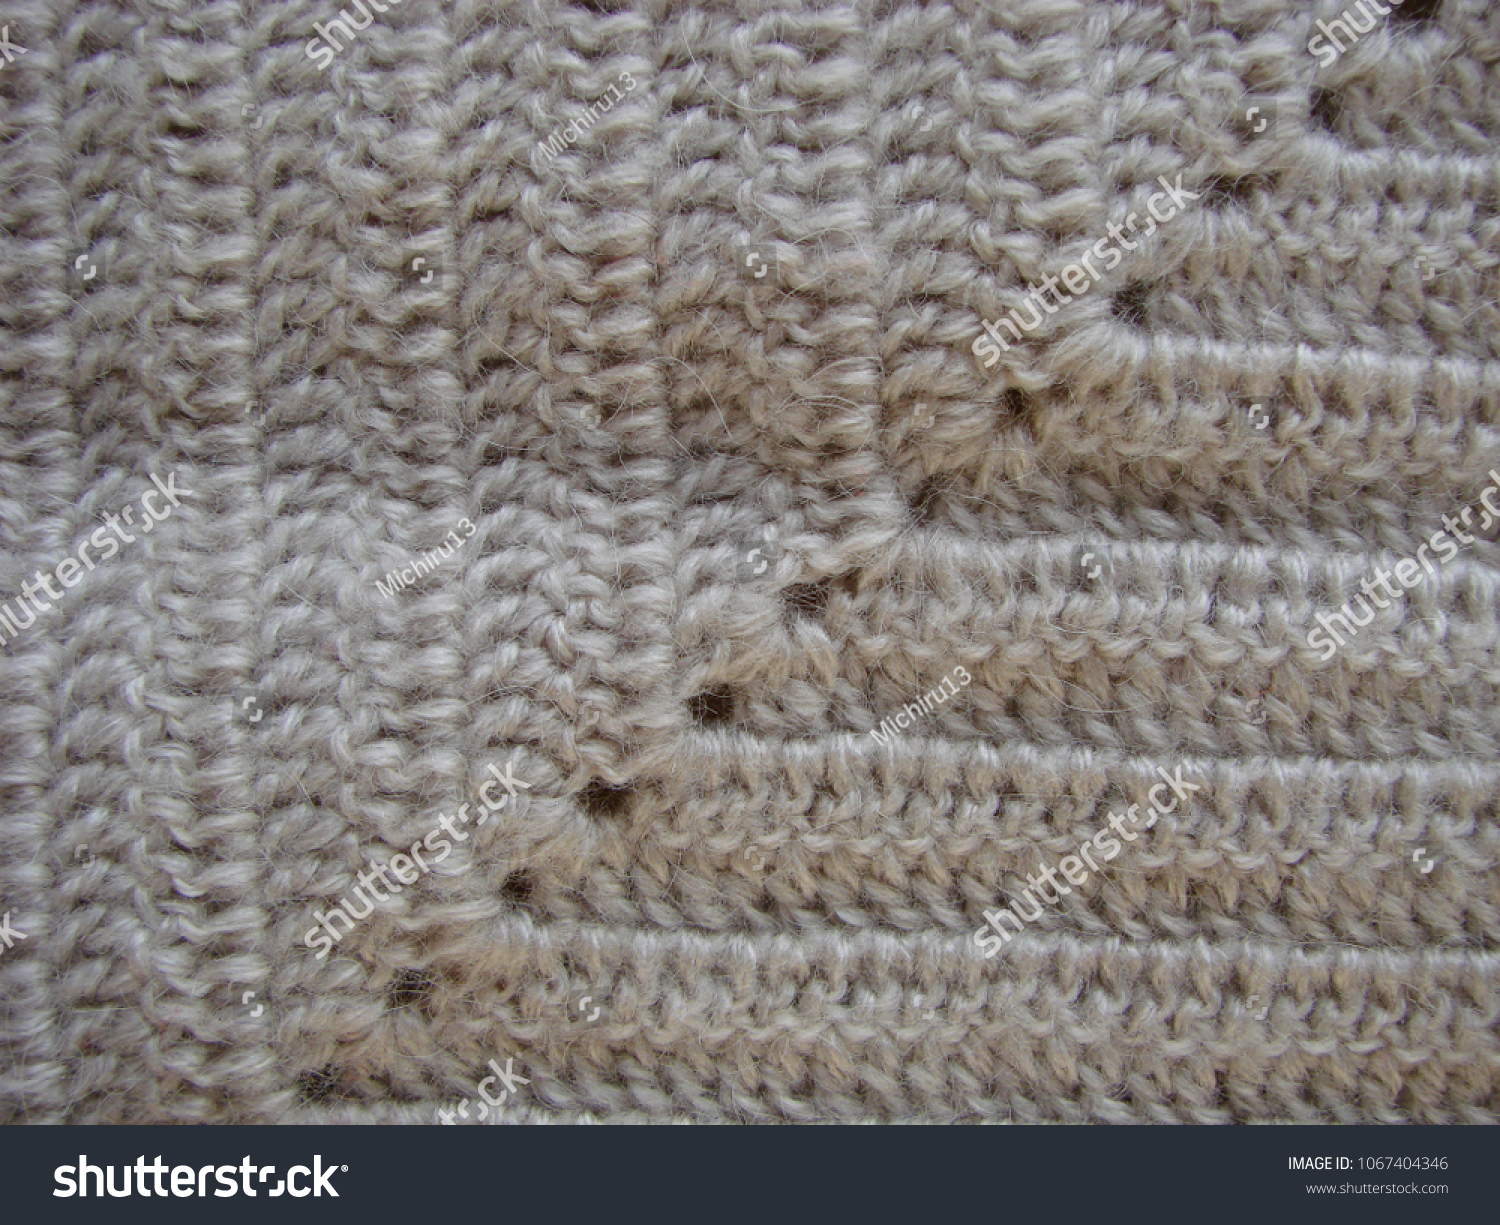 96f331607fbc5 knitting wool texture background. knitted fabric texture. Knitted jersey  background with a relief pattern